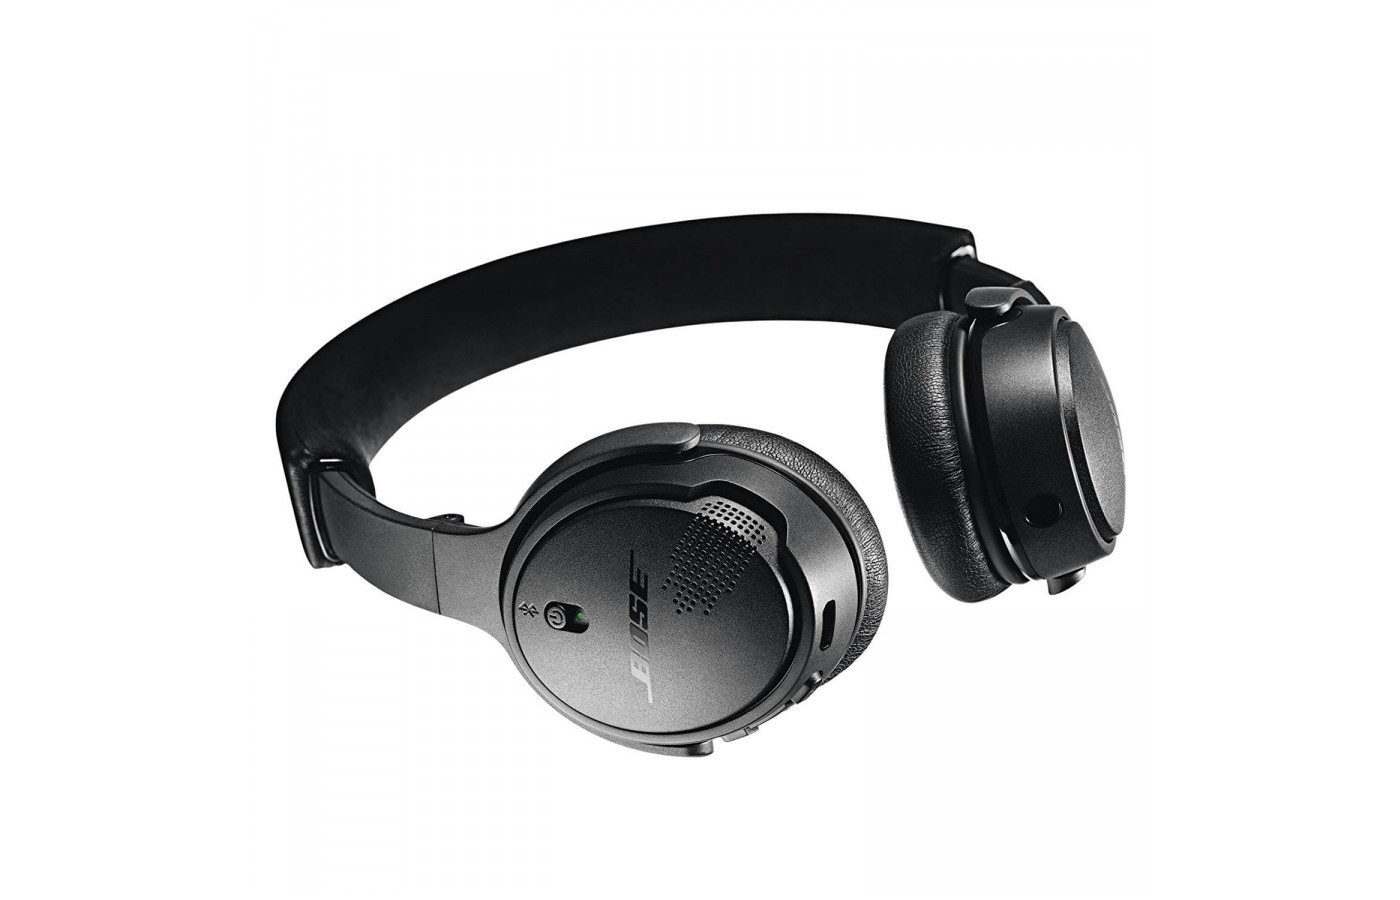 Bose SoundLink On-Ear Bluetooth Headphones with Microphone, Triple Black Side